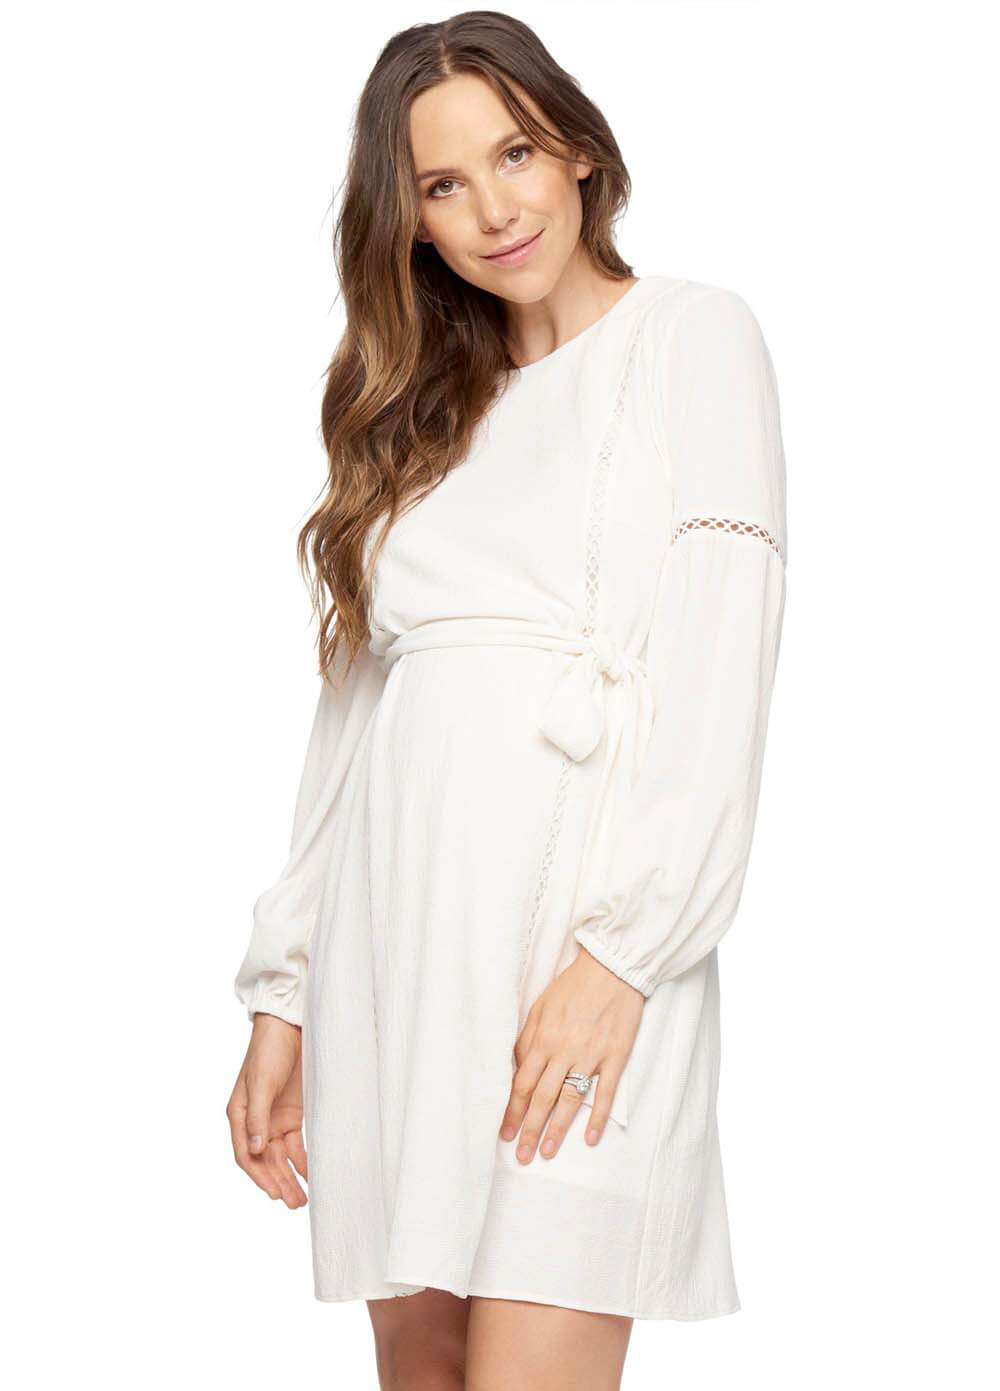 4d6c80aef1c You And Me Maternity Dress in Ivory by Bae The Label